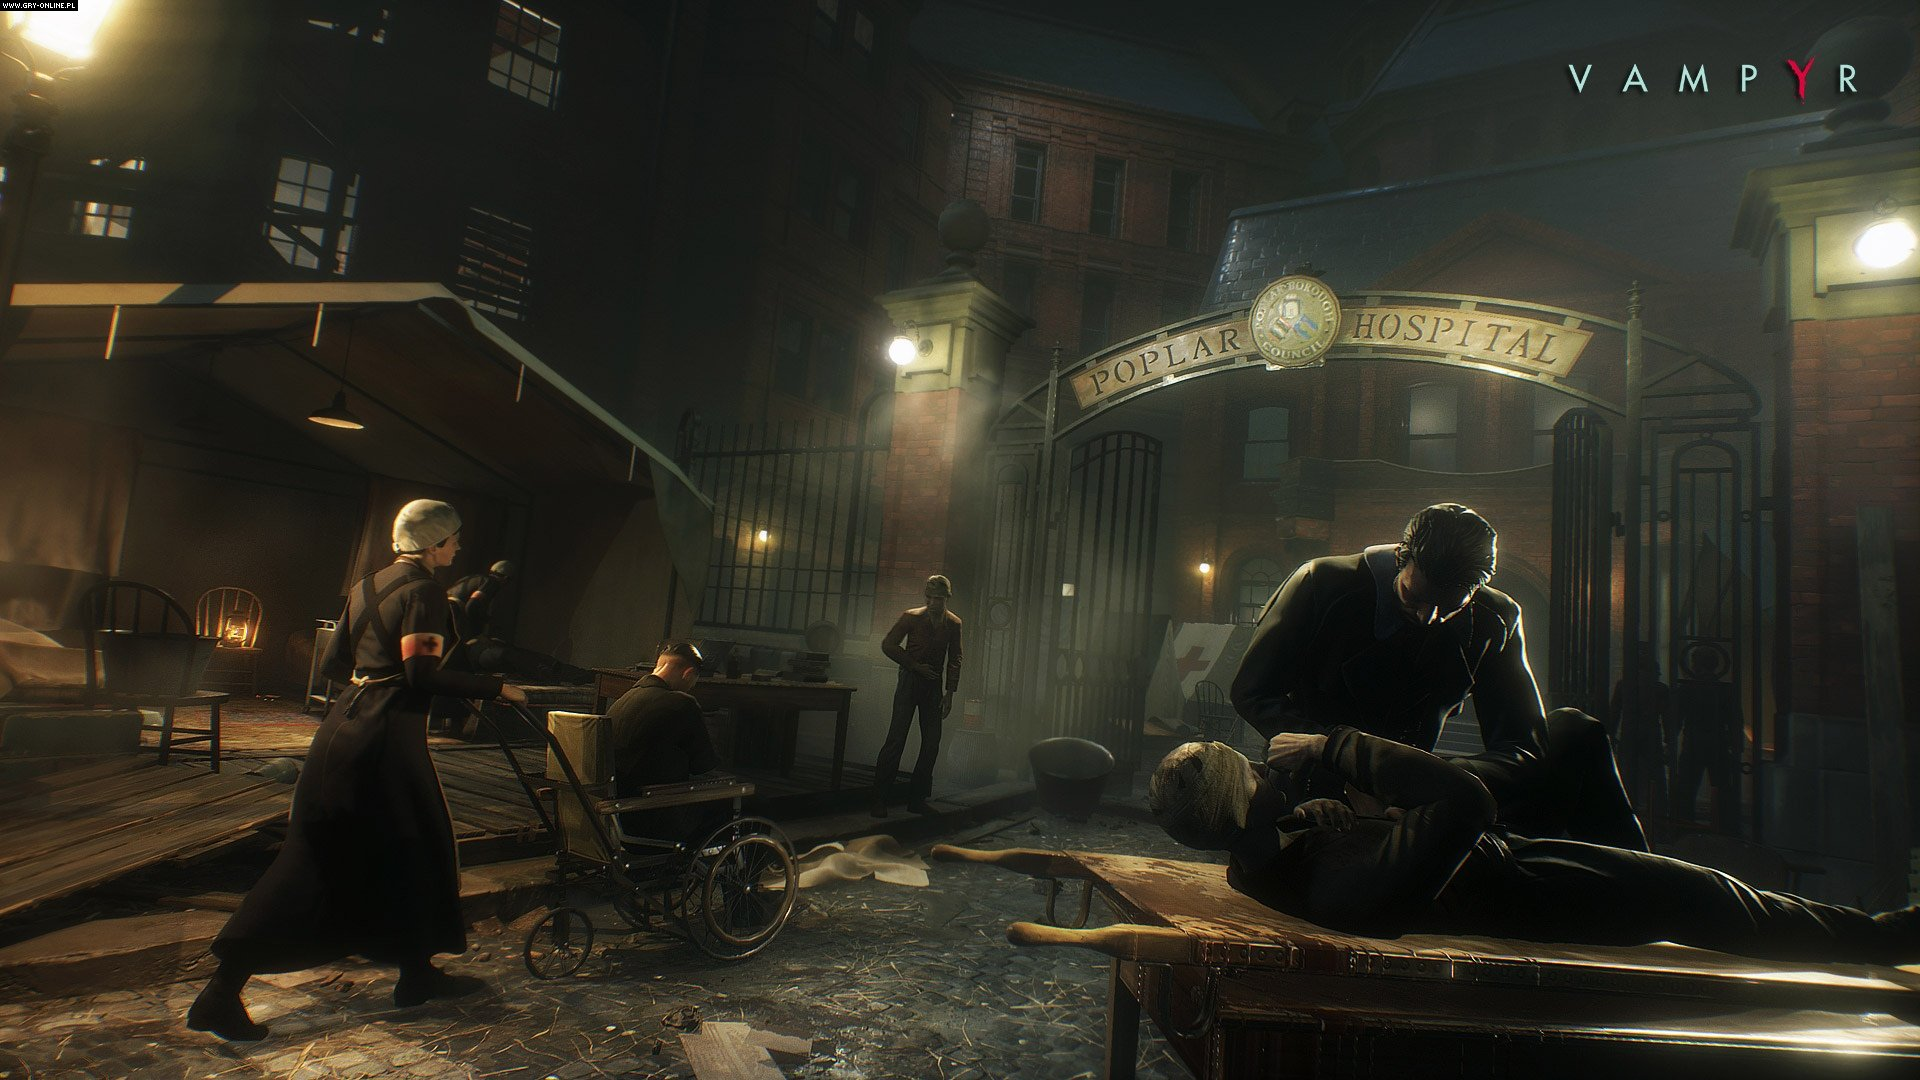 Vampyr PC, PS4, XONE, Switch Gry Screen 8/17, DONTNOD Entertainment, Focus Home Interactive